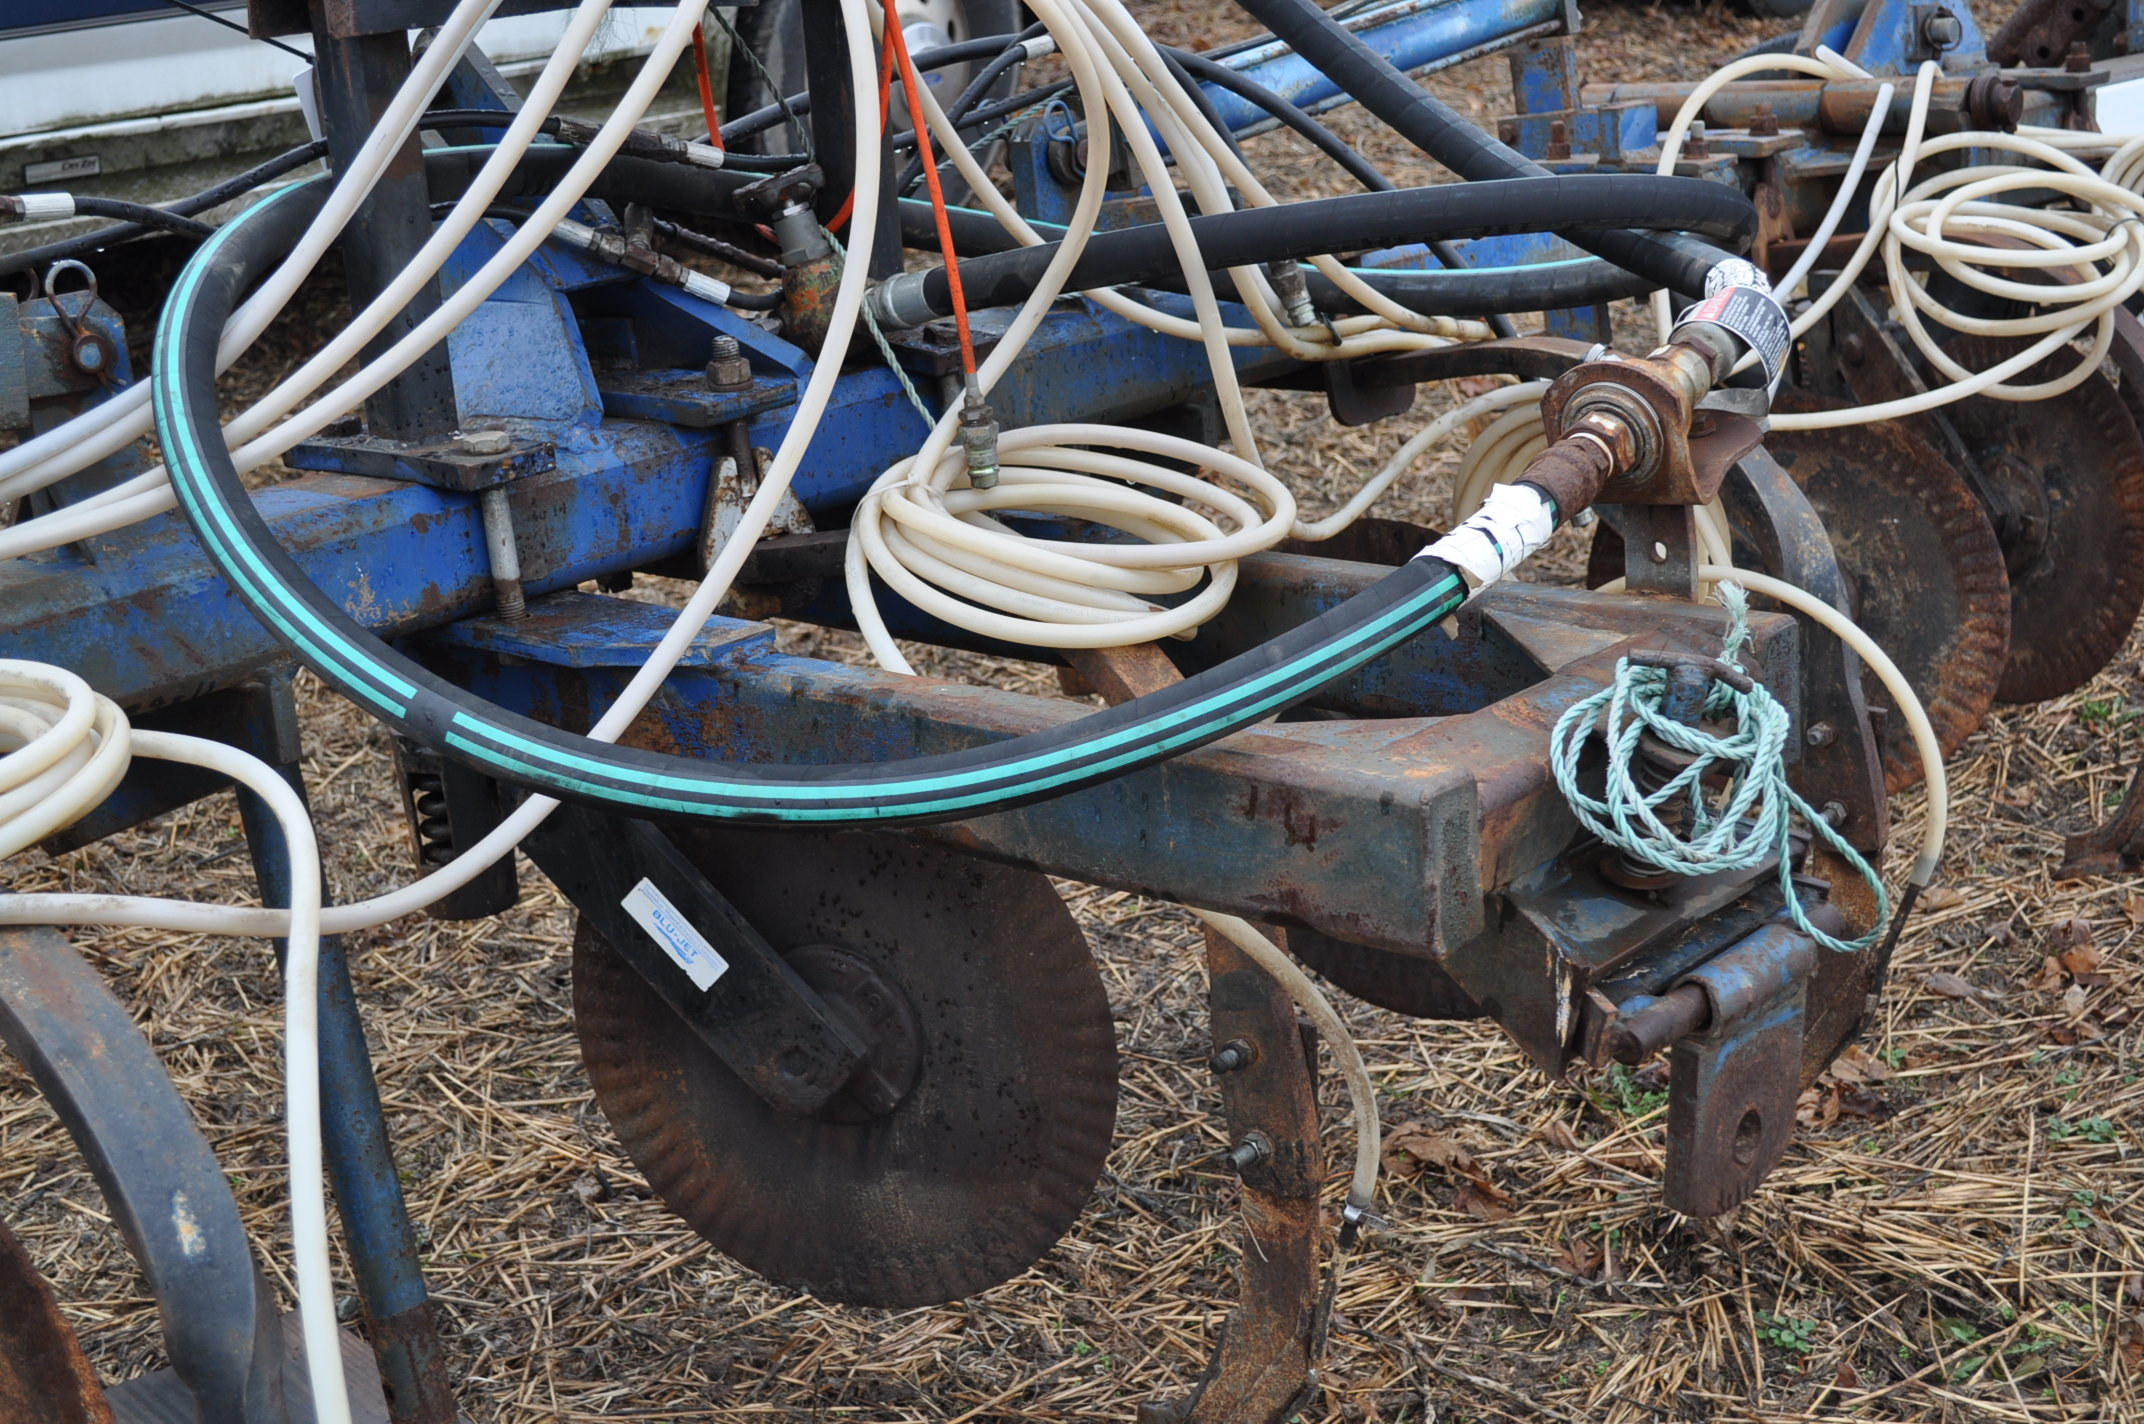 11-shank Blu Jet NH3 bar, 3 pt, hyd fold, gauge wheels, rear hitch, leading coulters - Image 9 of 9